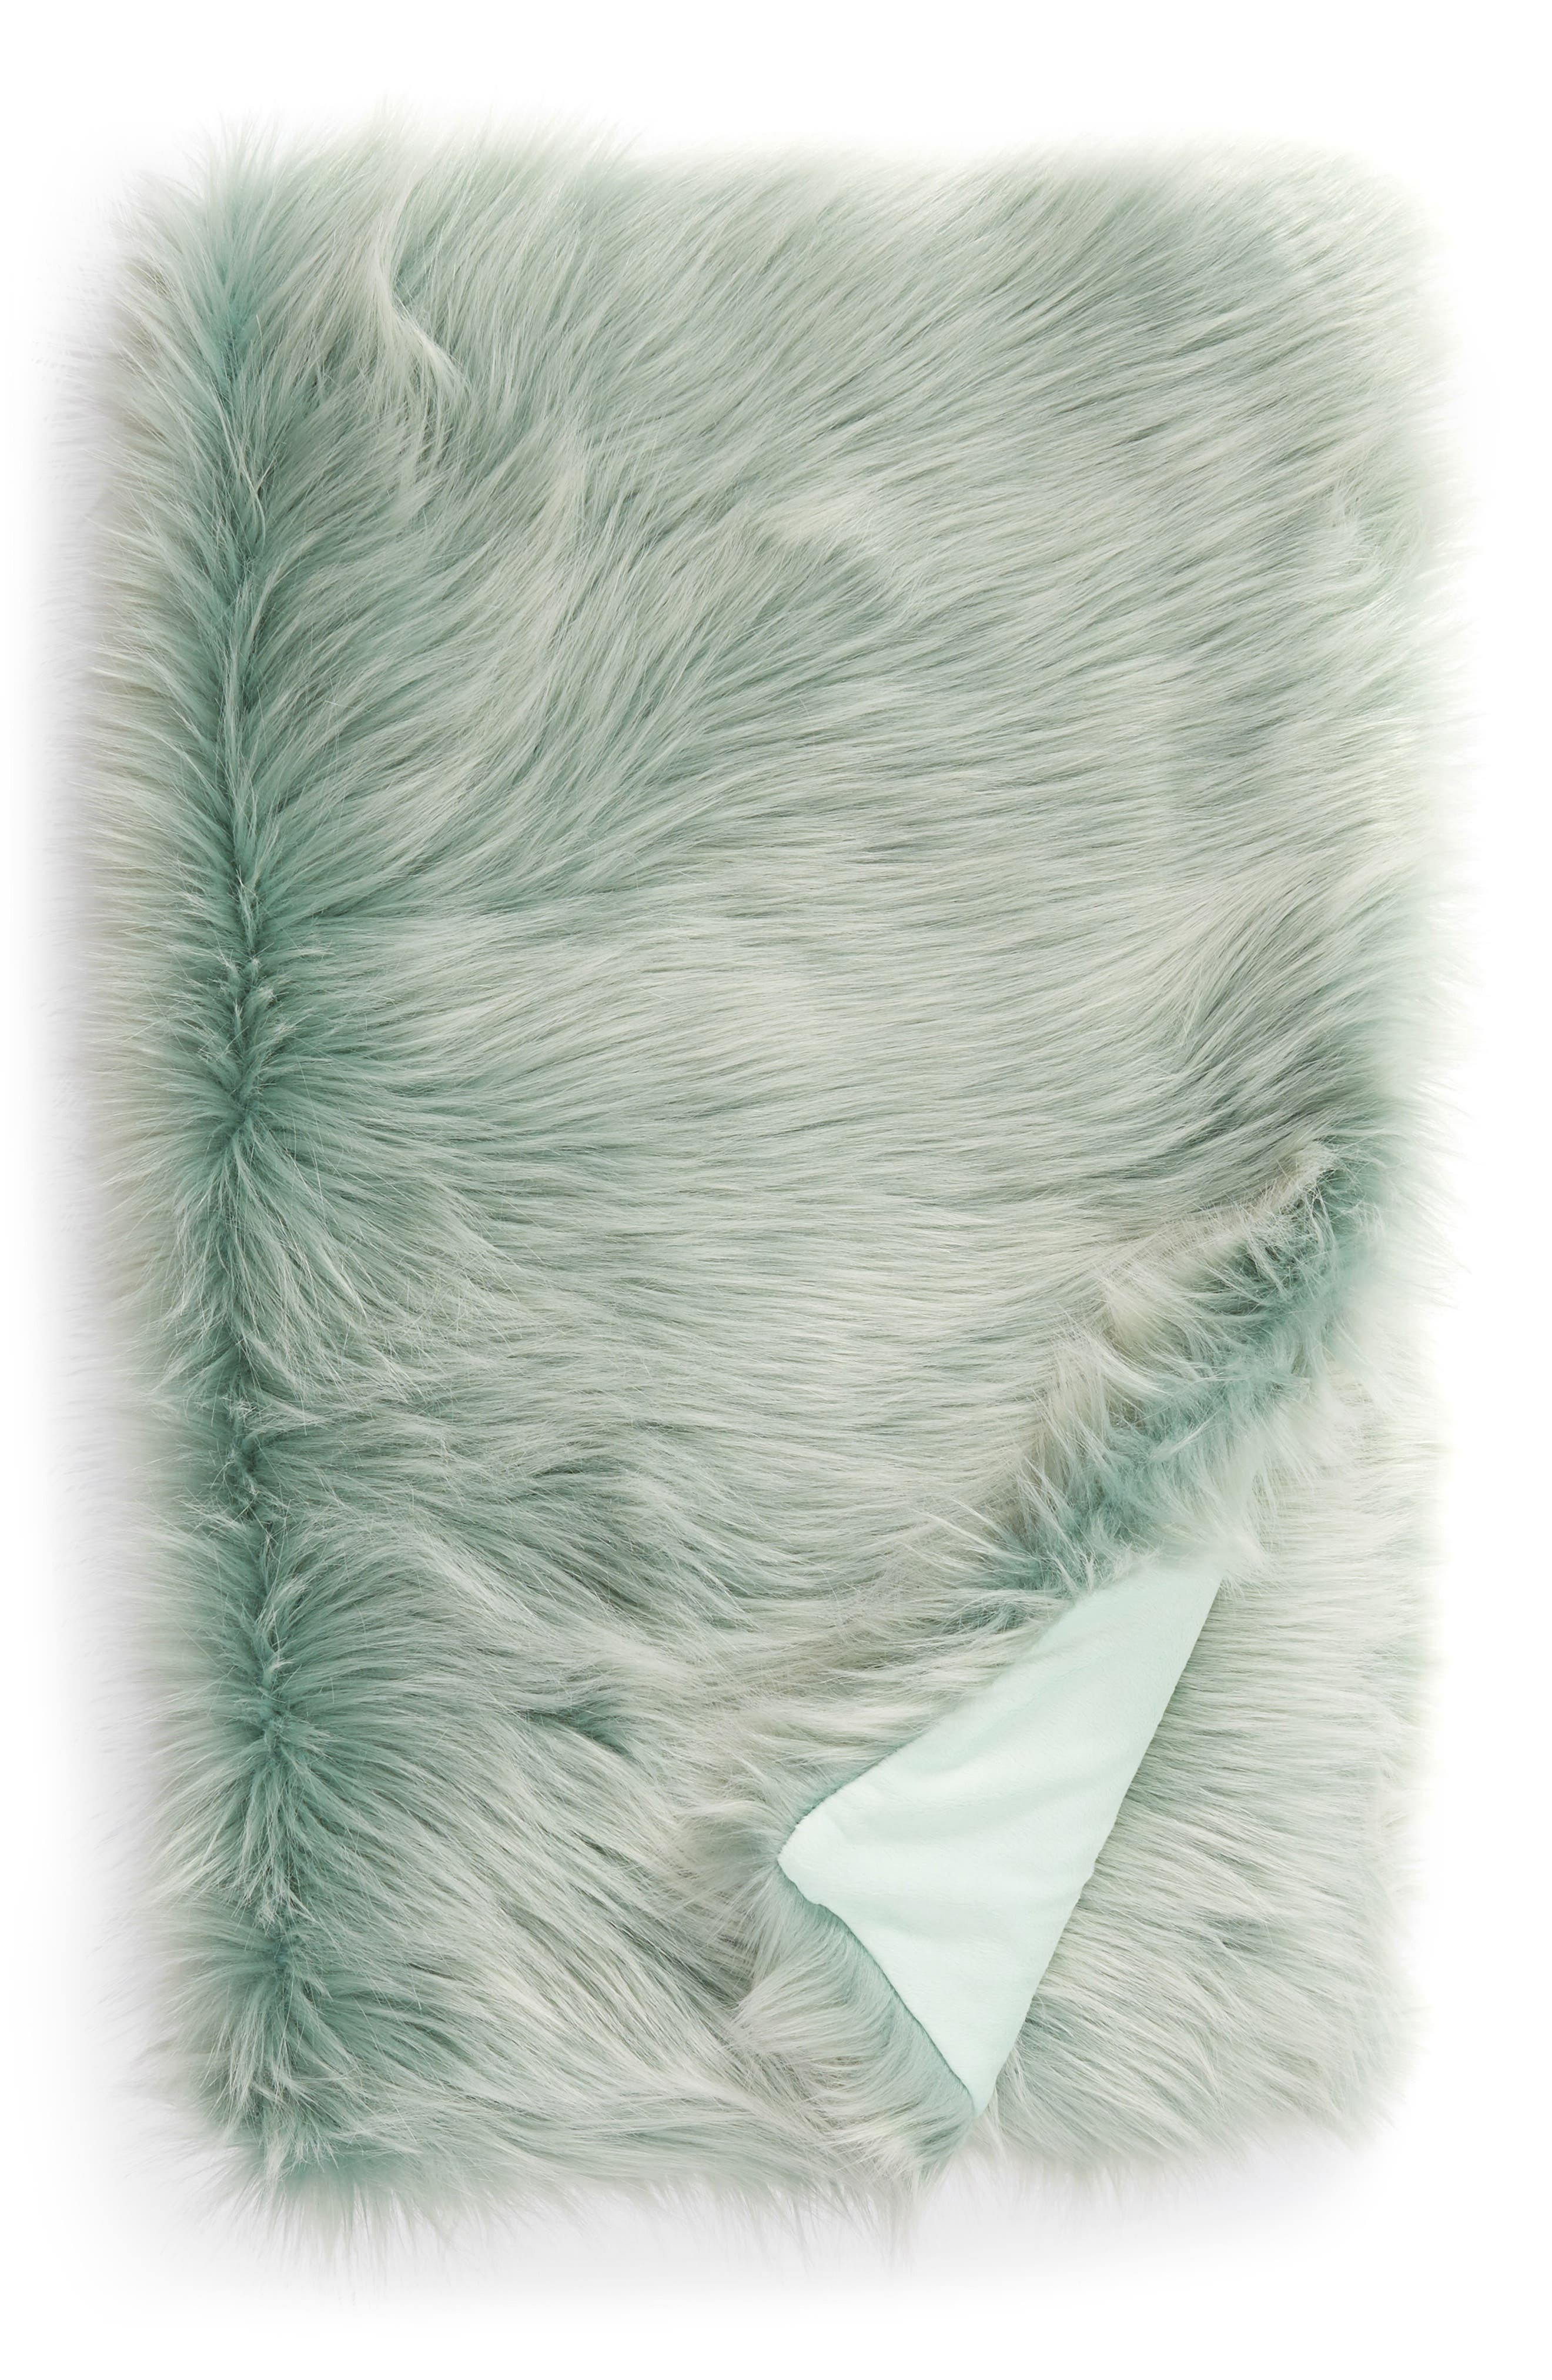 NORDSTROM AT HOME, Faux Fur Throw, Main thumbnail 1, color, TEAL STEAM